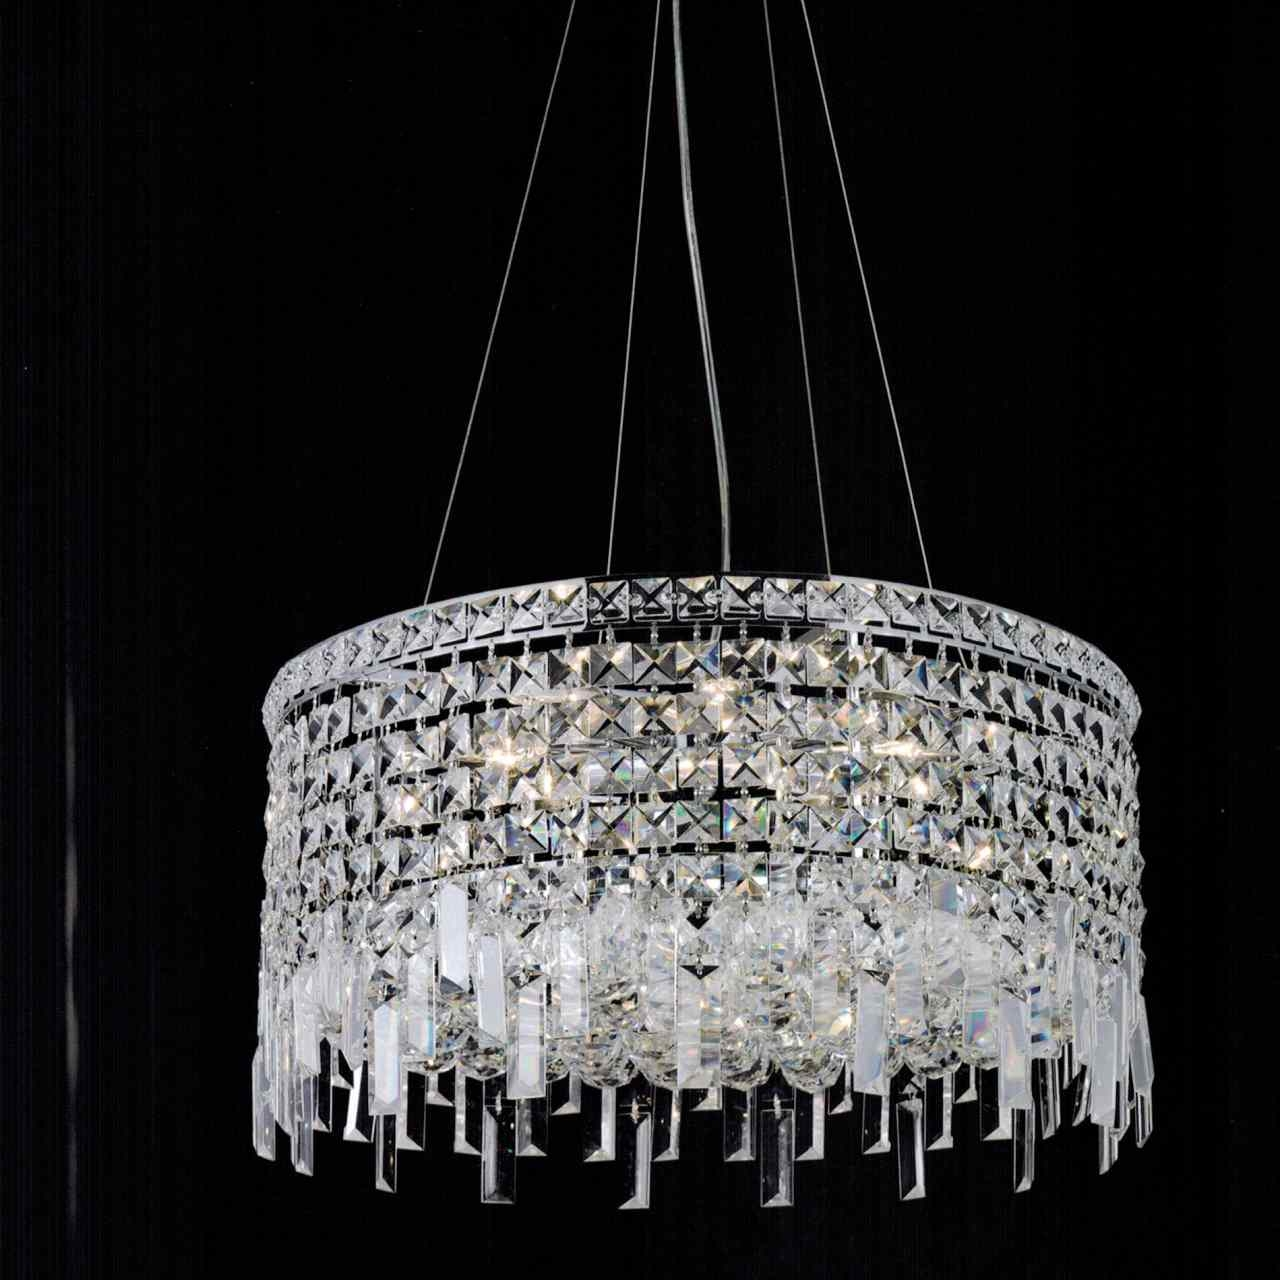 Brizzo Lighting Stores 16 Bossolo Transitional Crystal Round Regarding Chrome And Crystal Chandelier (#5 of 12)